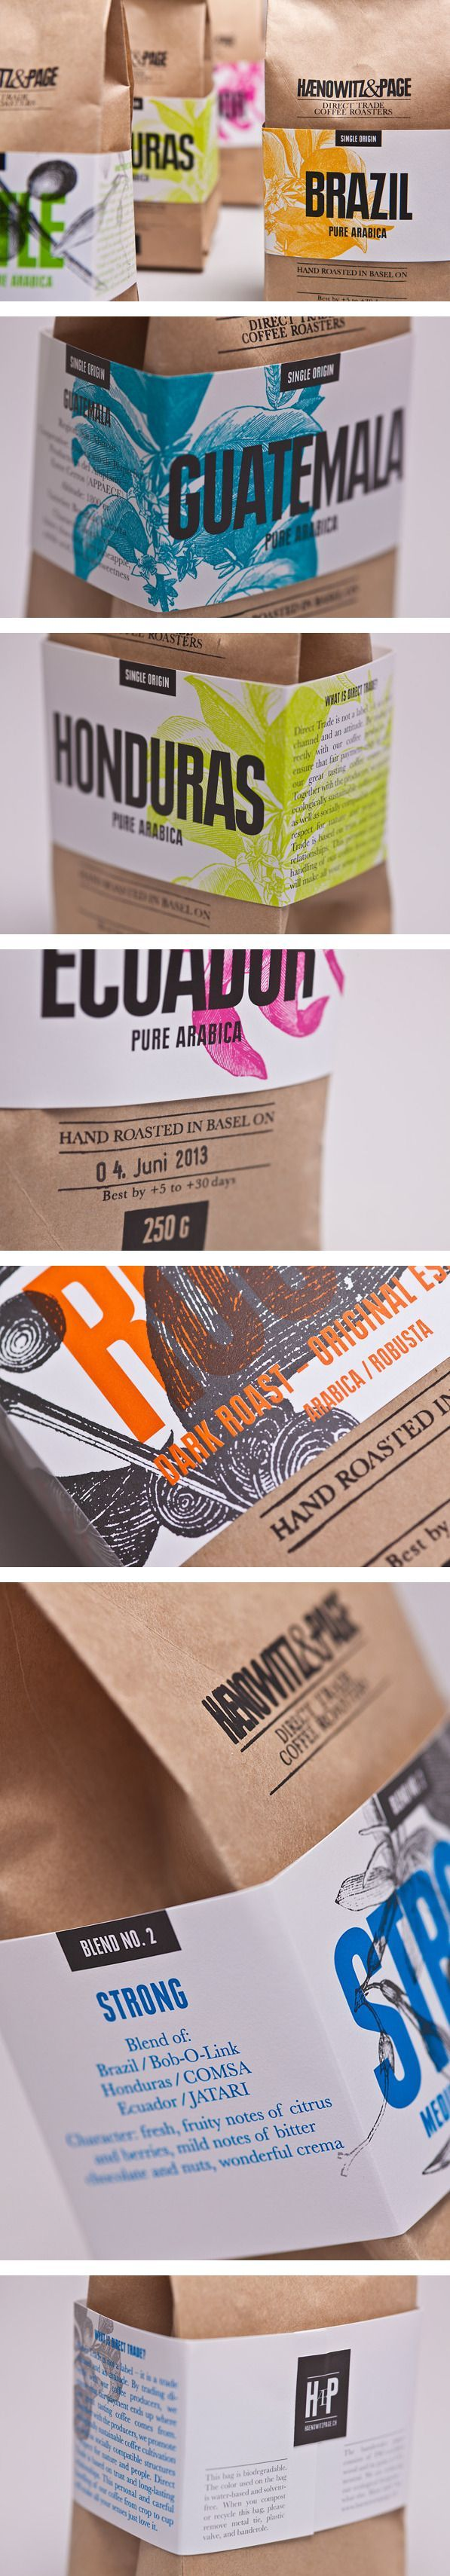 Haenowitz & Page Coffee packaging reflects the different countries the coffee comes from